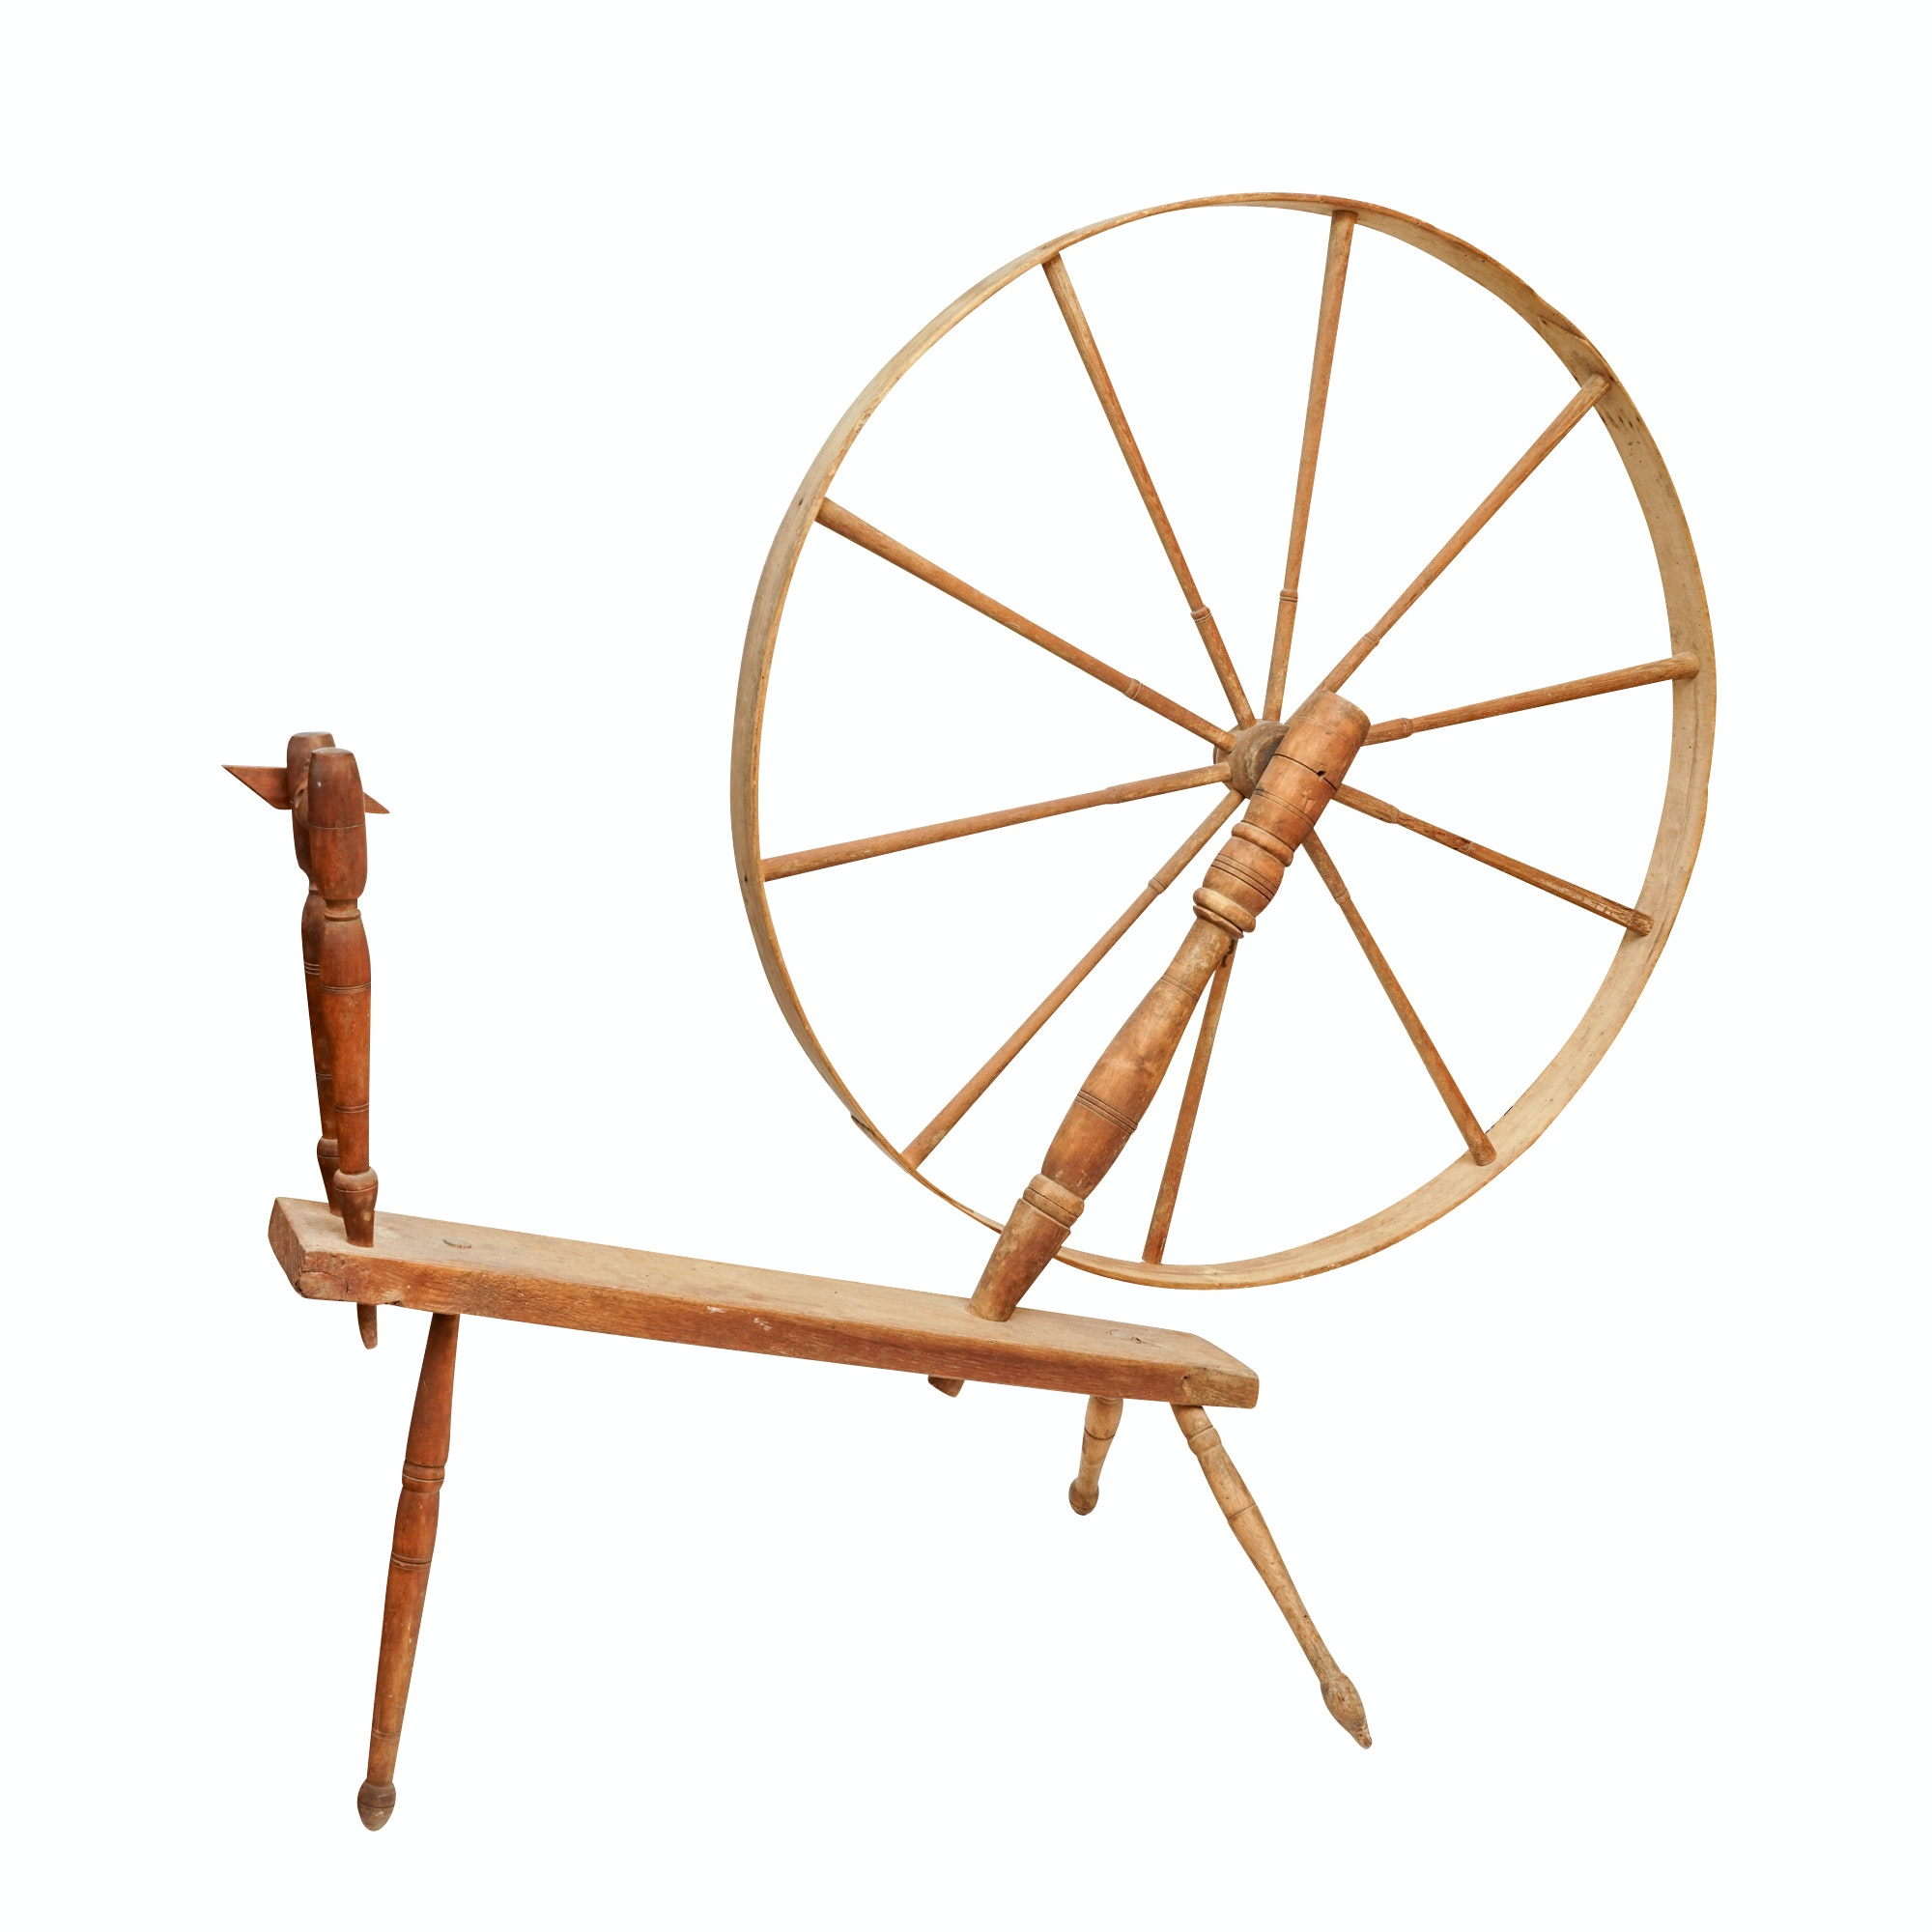 Antique Wood Spinning Wheel